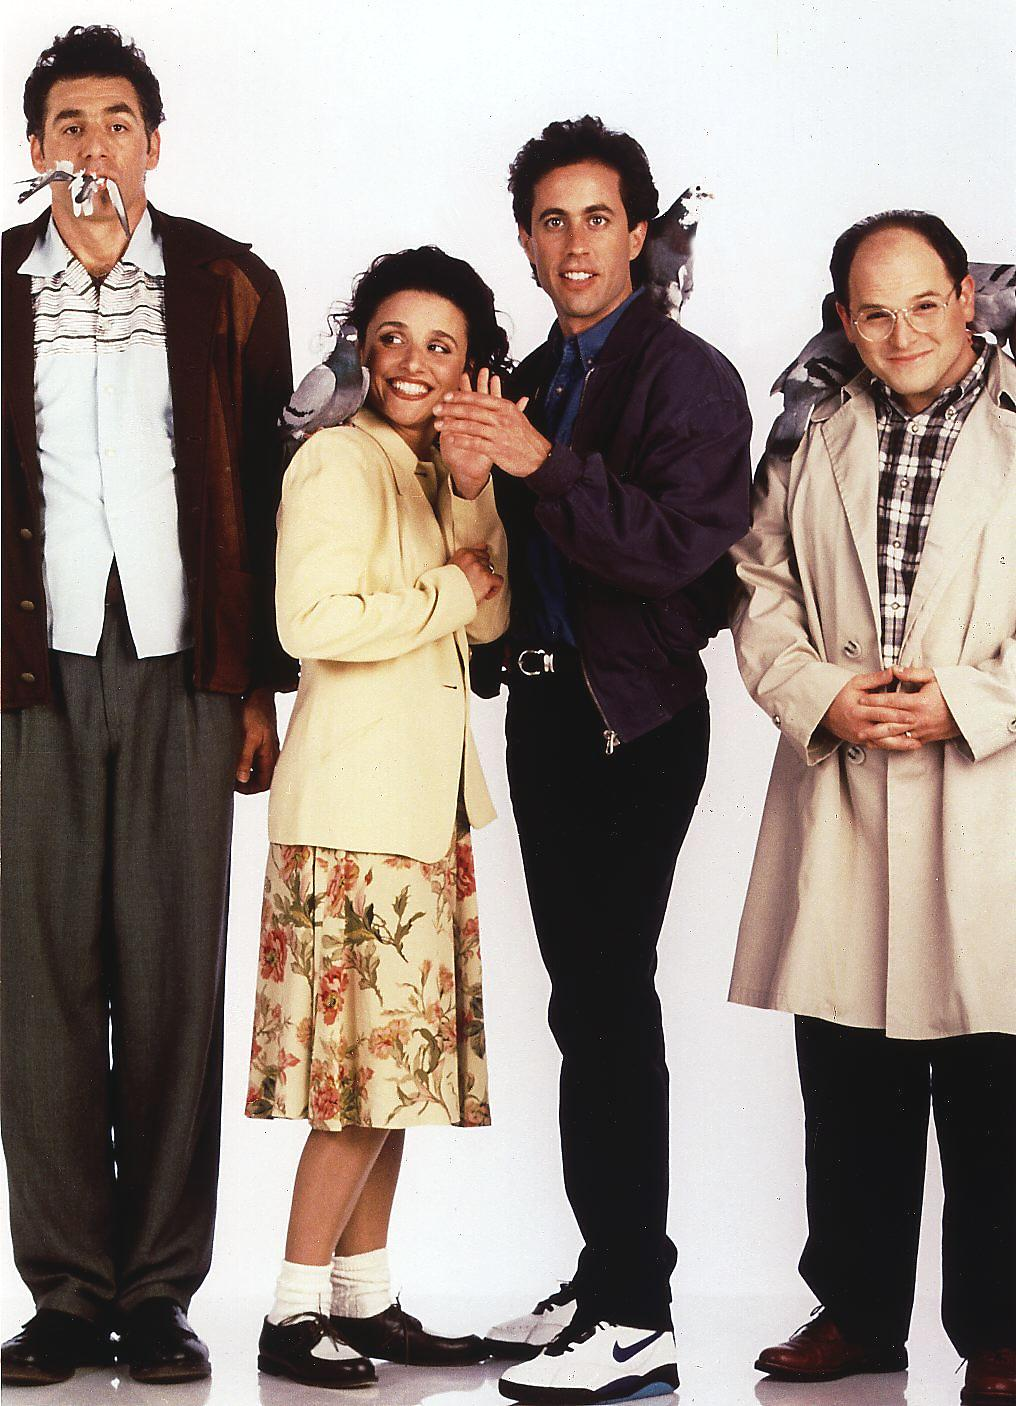 """The cast of """"Seinfeld"""" poses for a promotional photo, 1998 